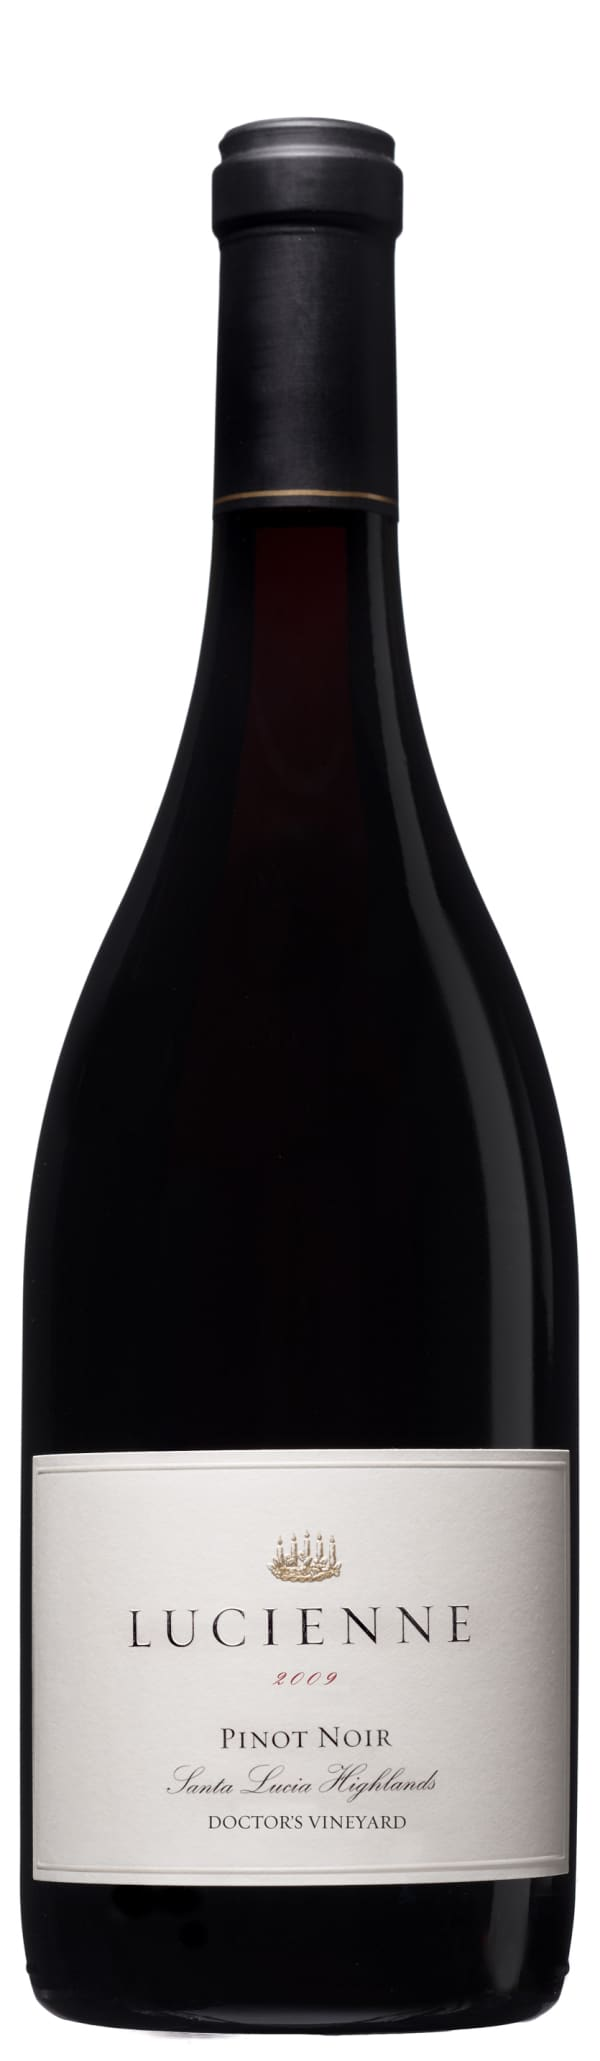 Lucienne Pinot Noir Doctor's Vineyard 2013